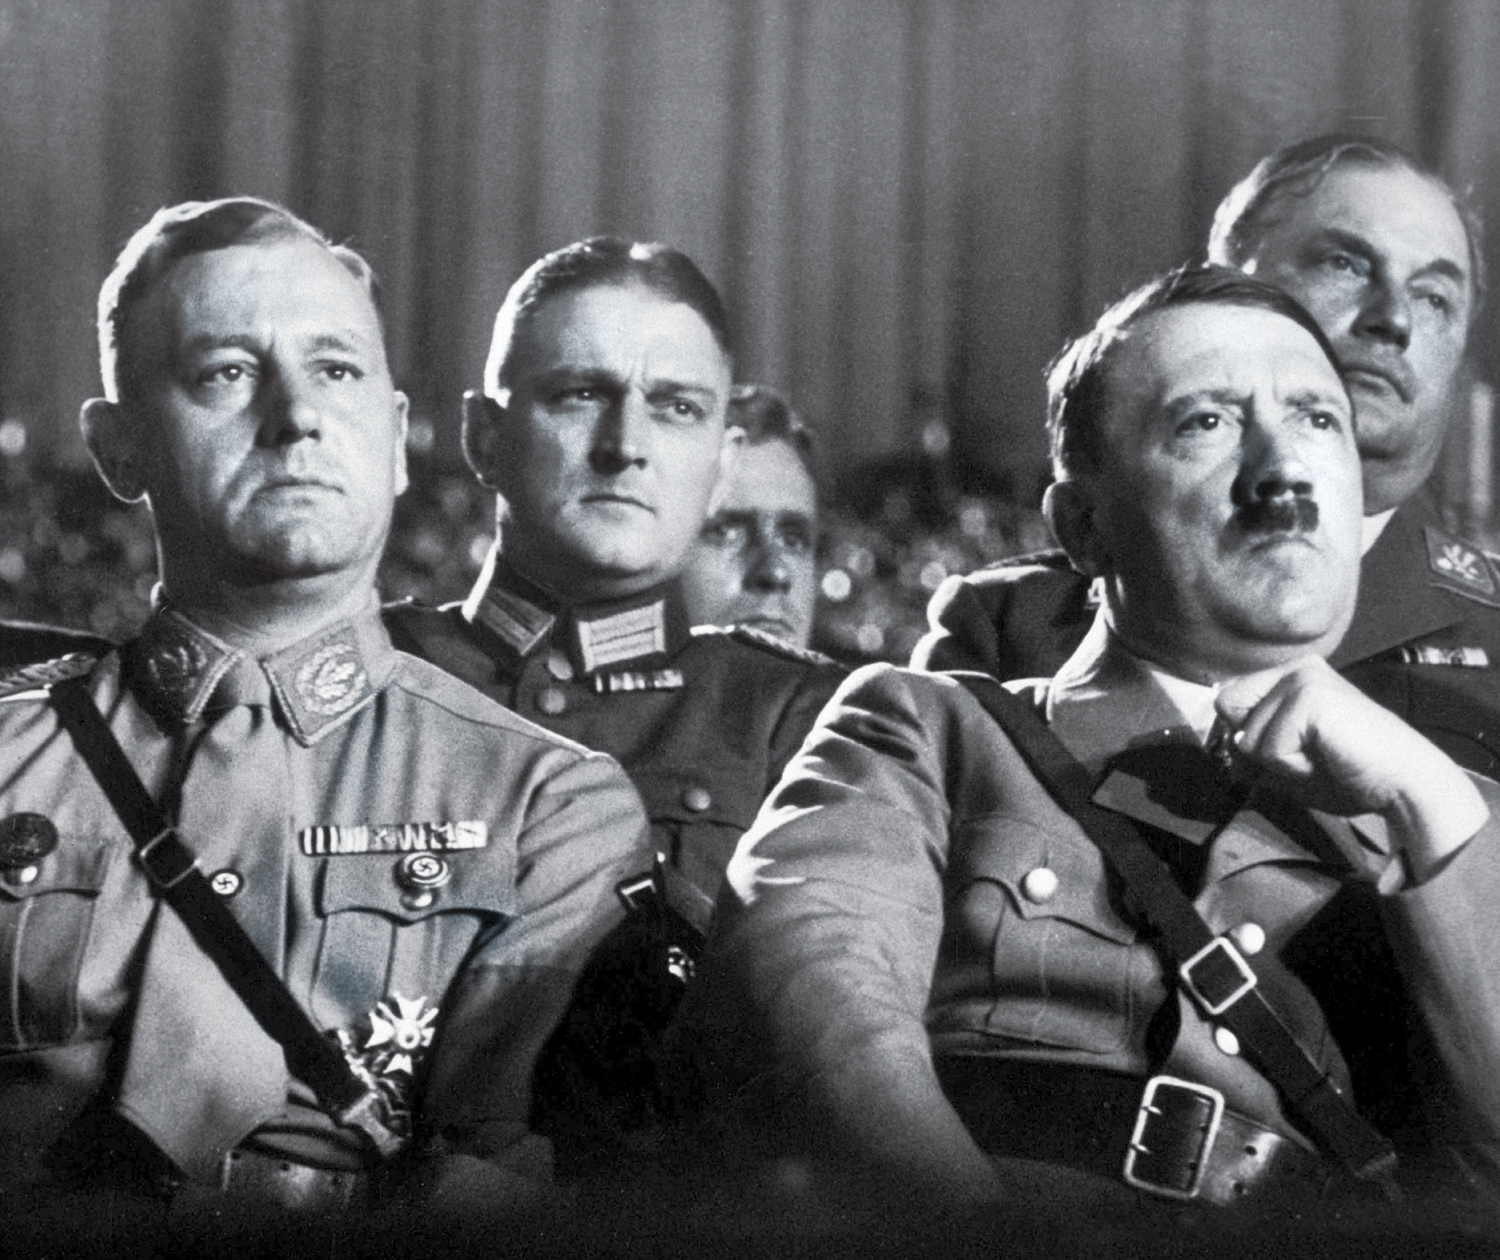 A-group-of-Nazi-leaders-including-Adolf-Hitler